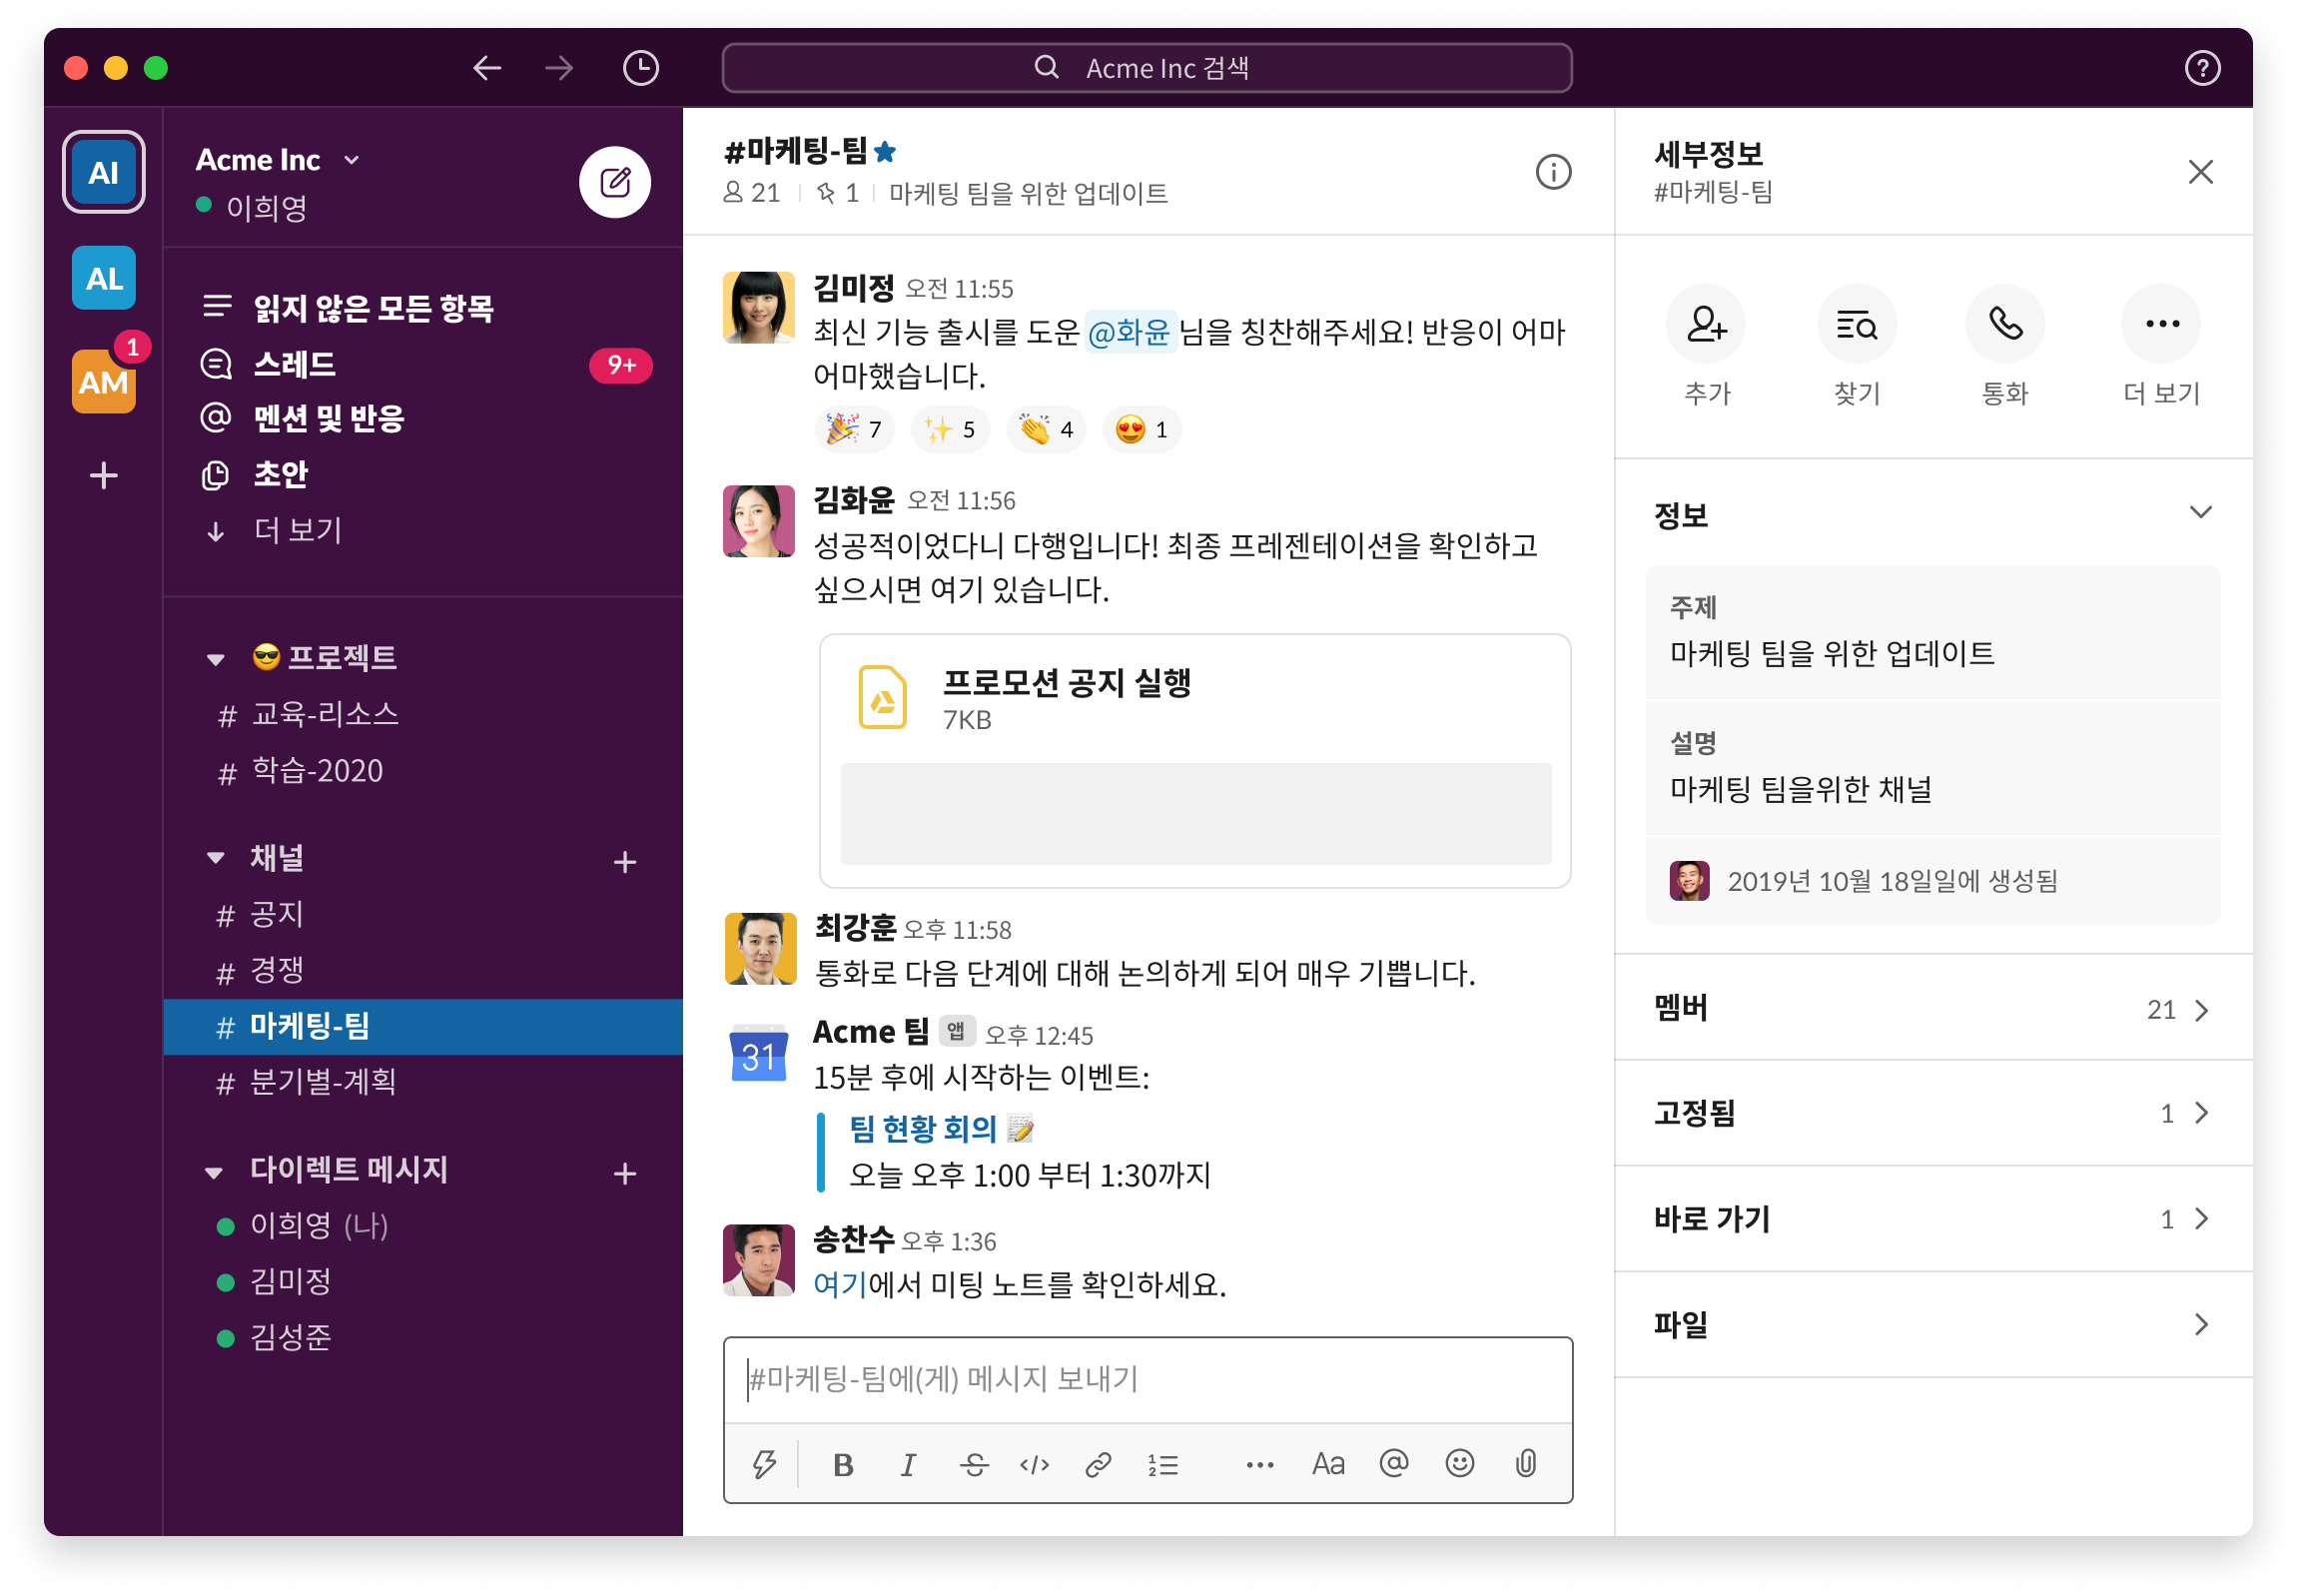 The Slack desktop app localized into Korean